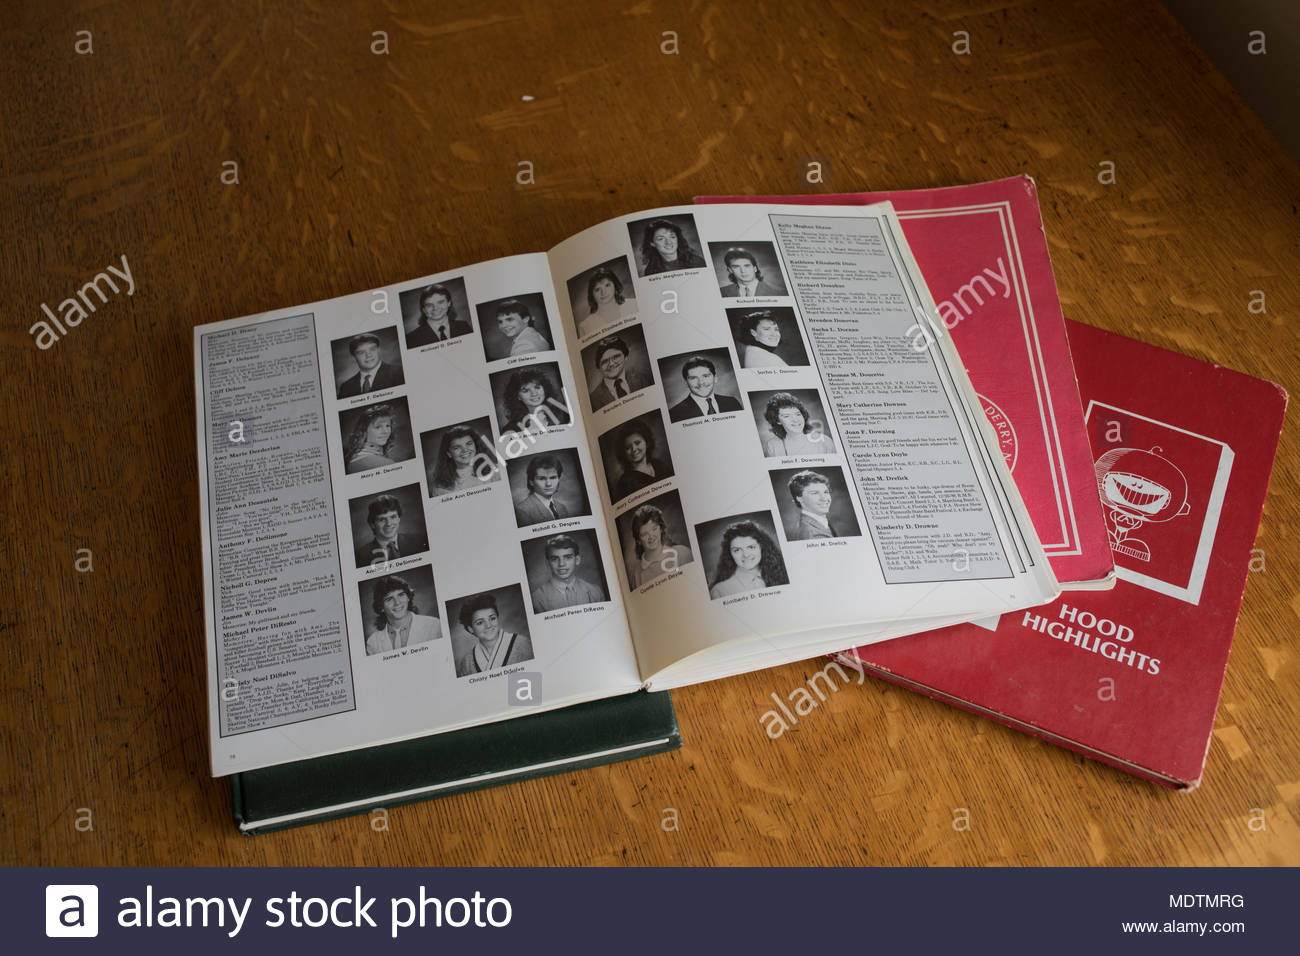 Yearbooks from the 1990's in New England, USA. - Stock Image